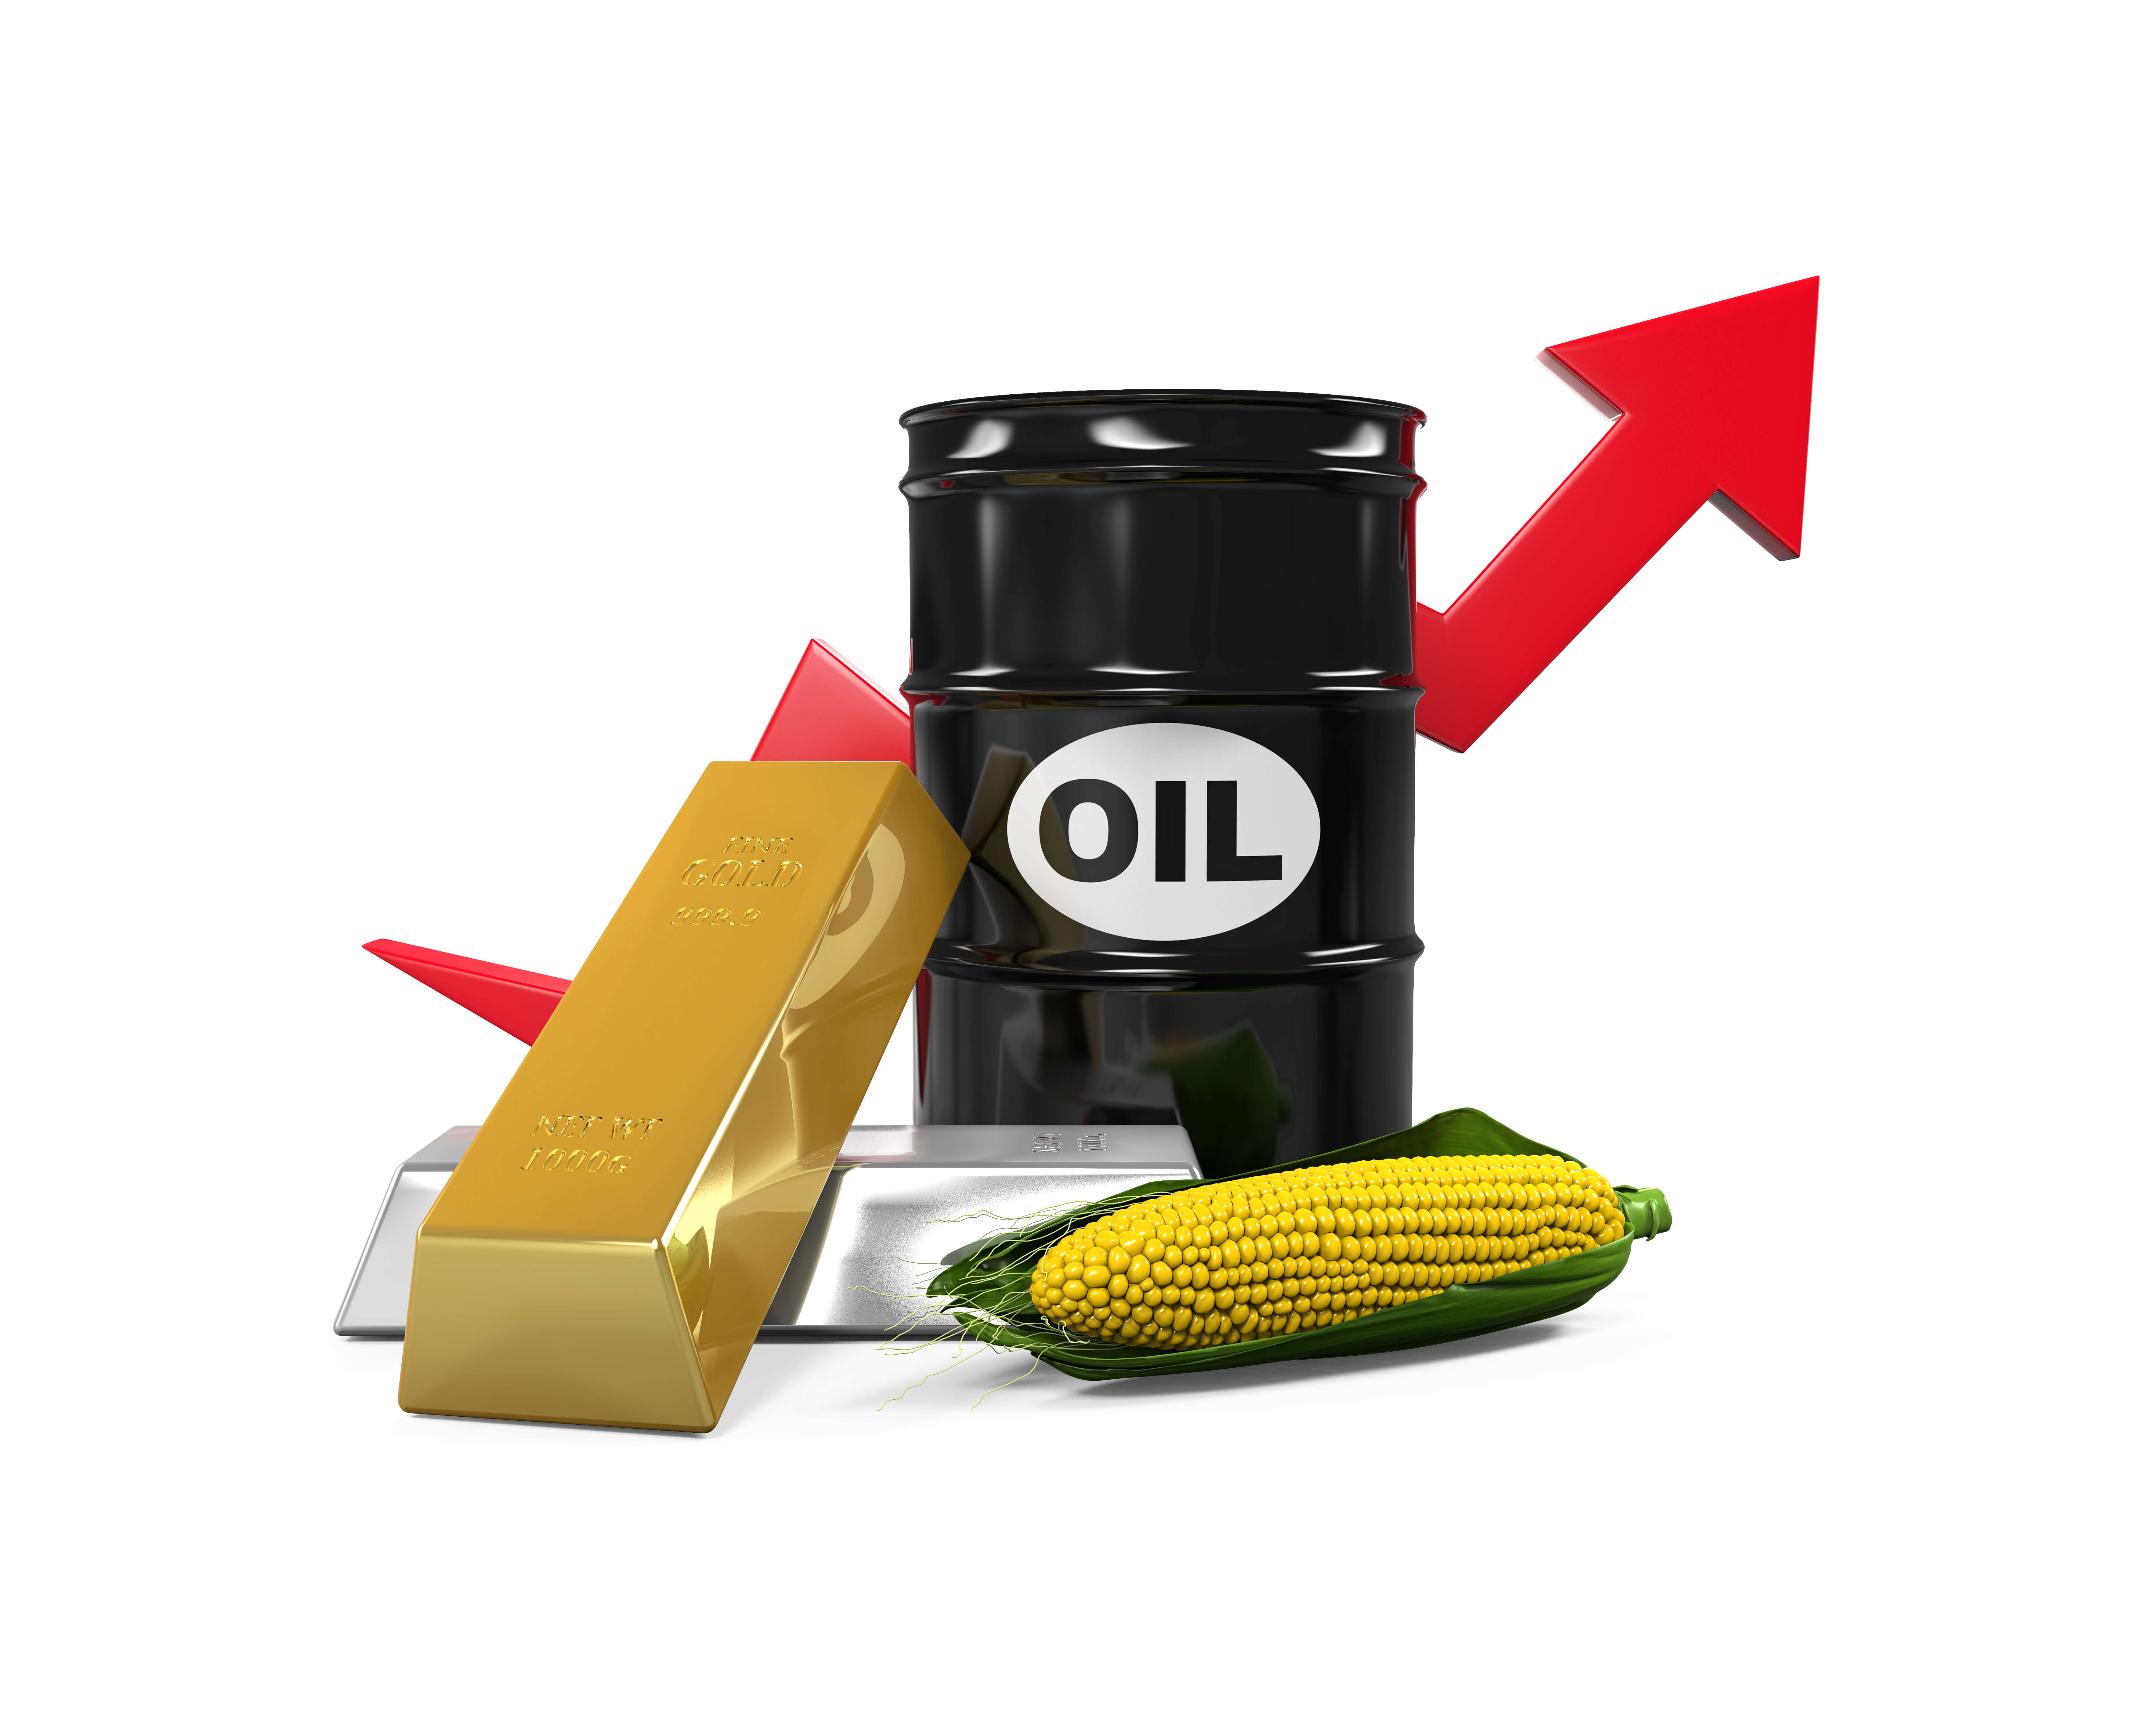 Oil prices and regional tensions